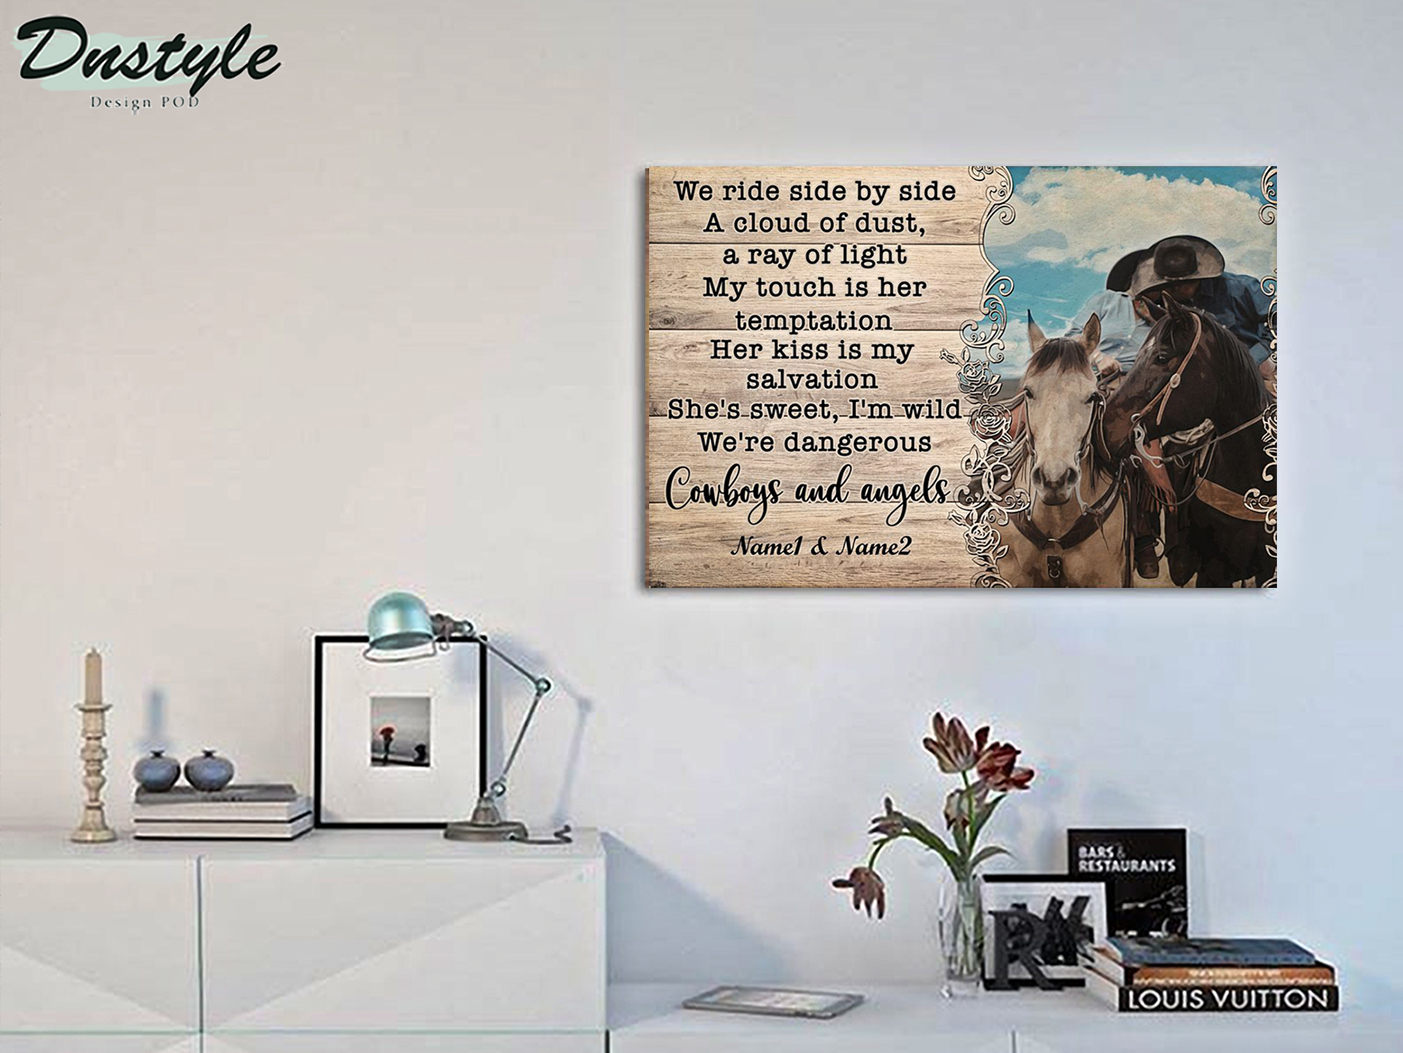 Personalized custom name cowboy and angels we ride side by side a cloud of dust poster A3